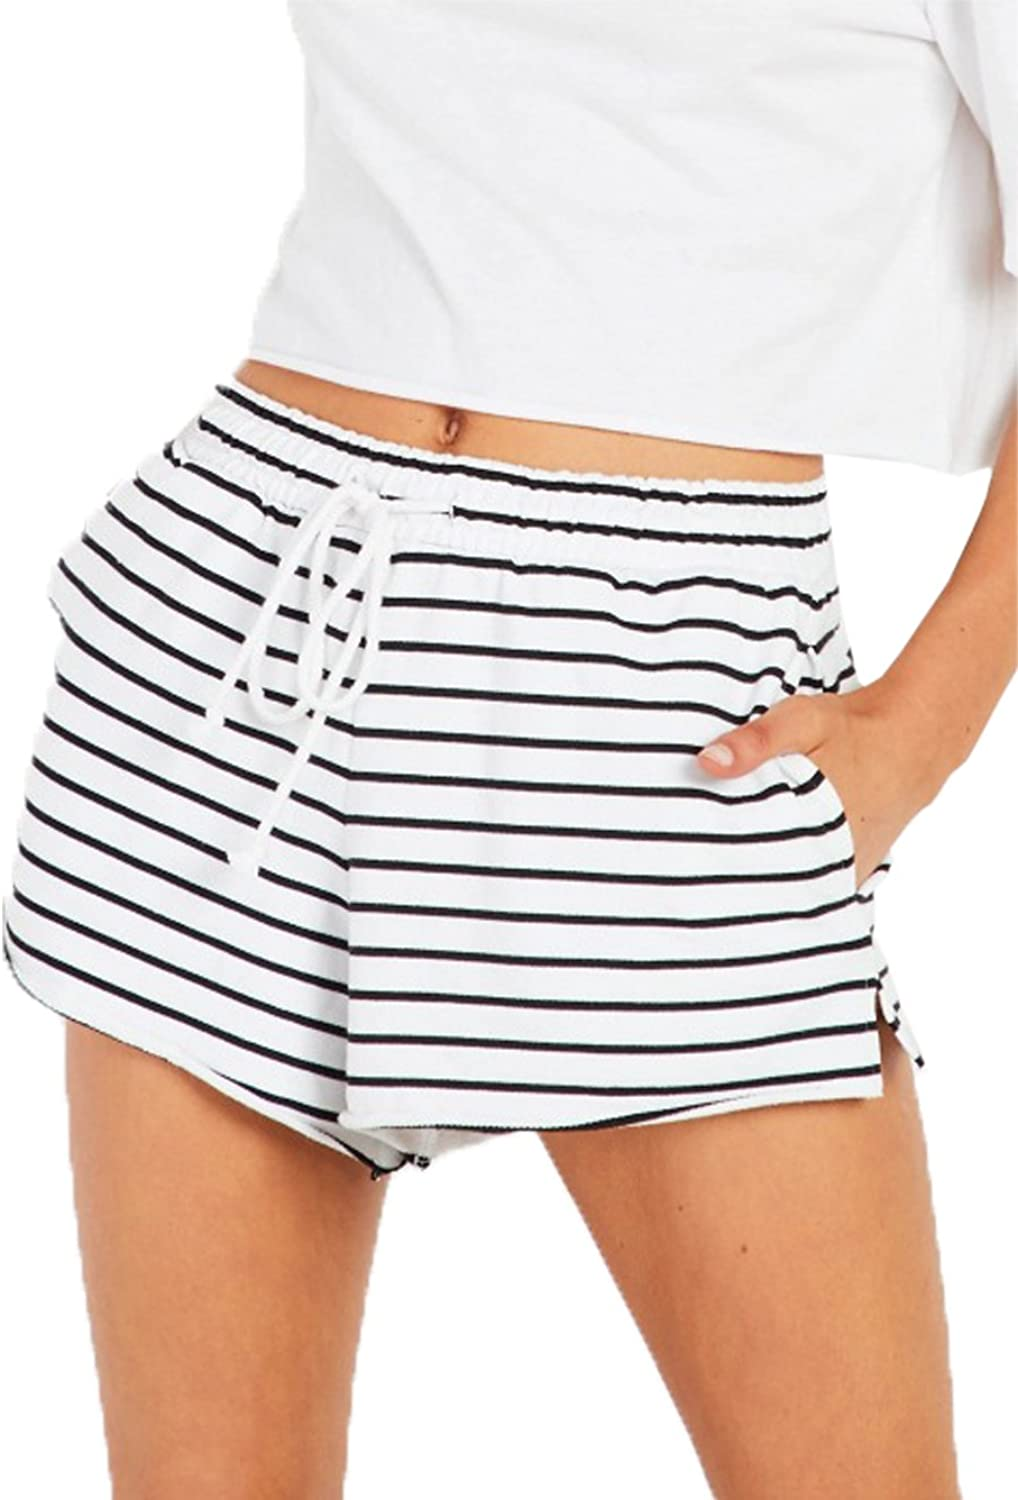 Famulily Women's Drawstring Elastic Waist Casual Comfy Striped Beach Shorts with Pockets